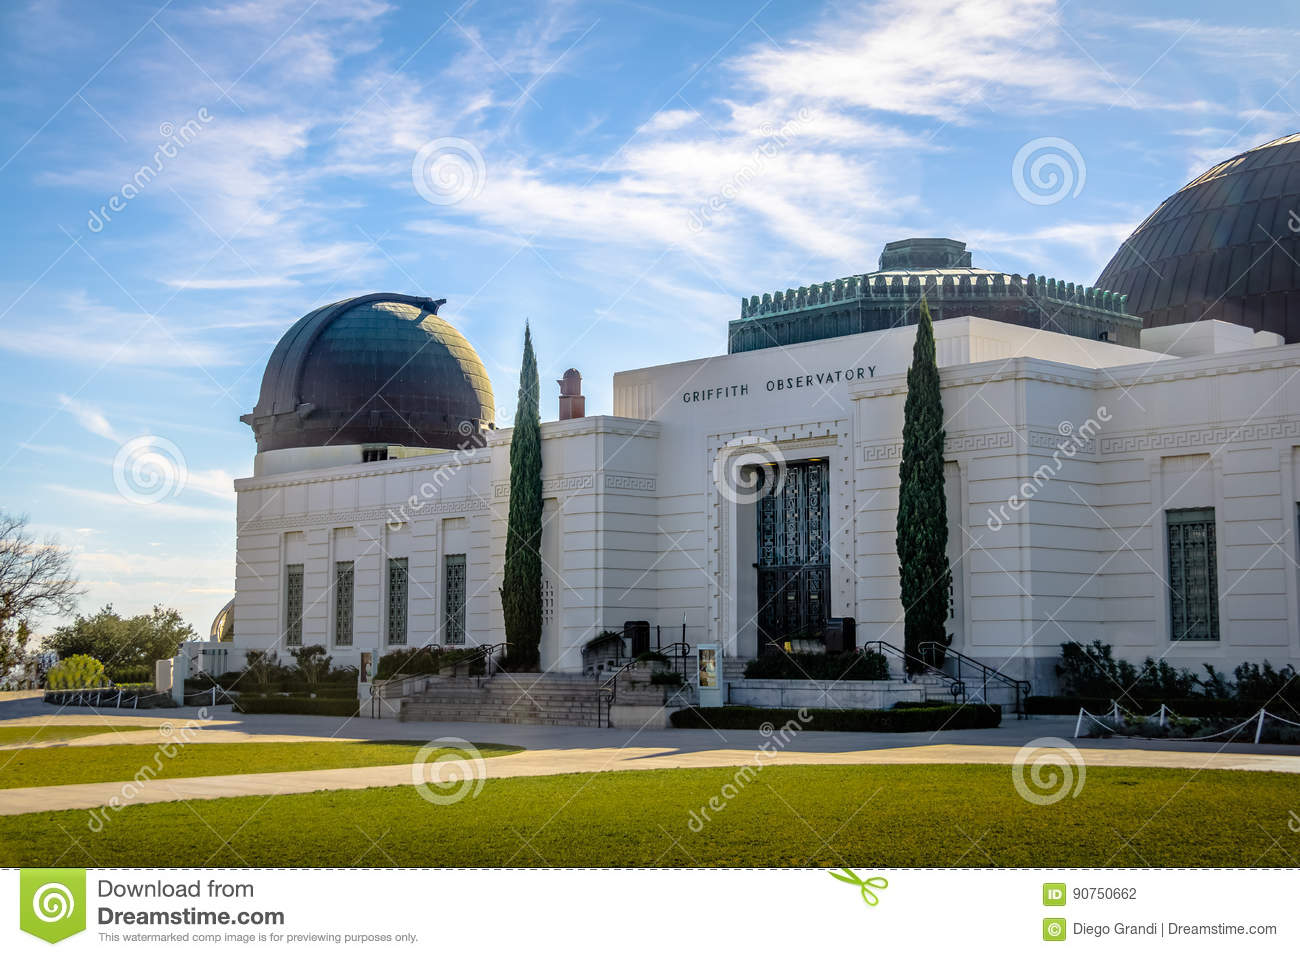 Griffith Observatory - Los Angeles, California, U.S.A.